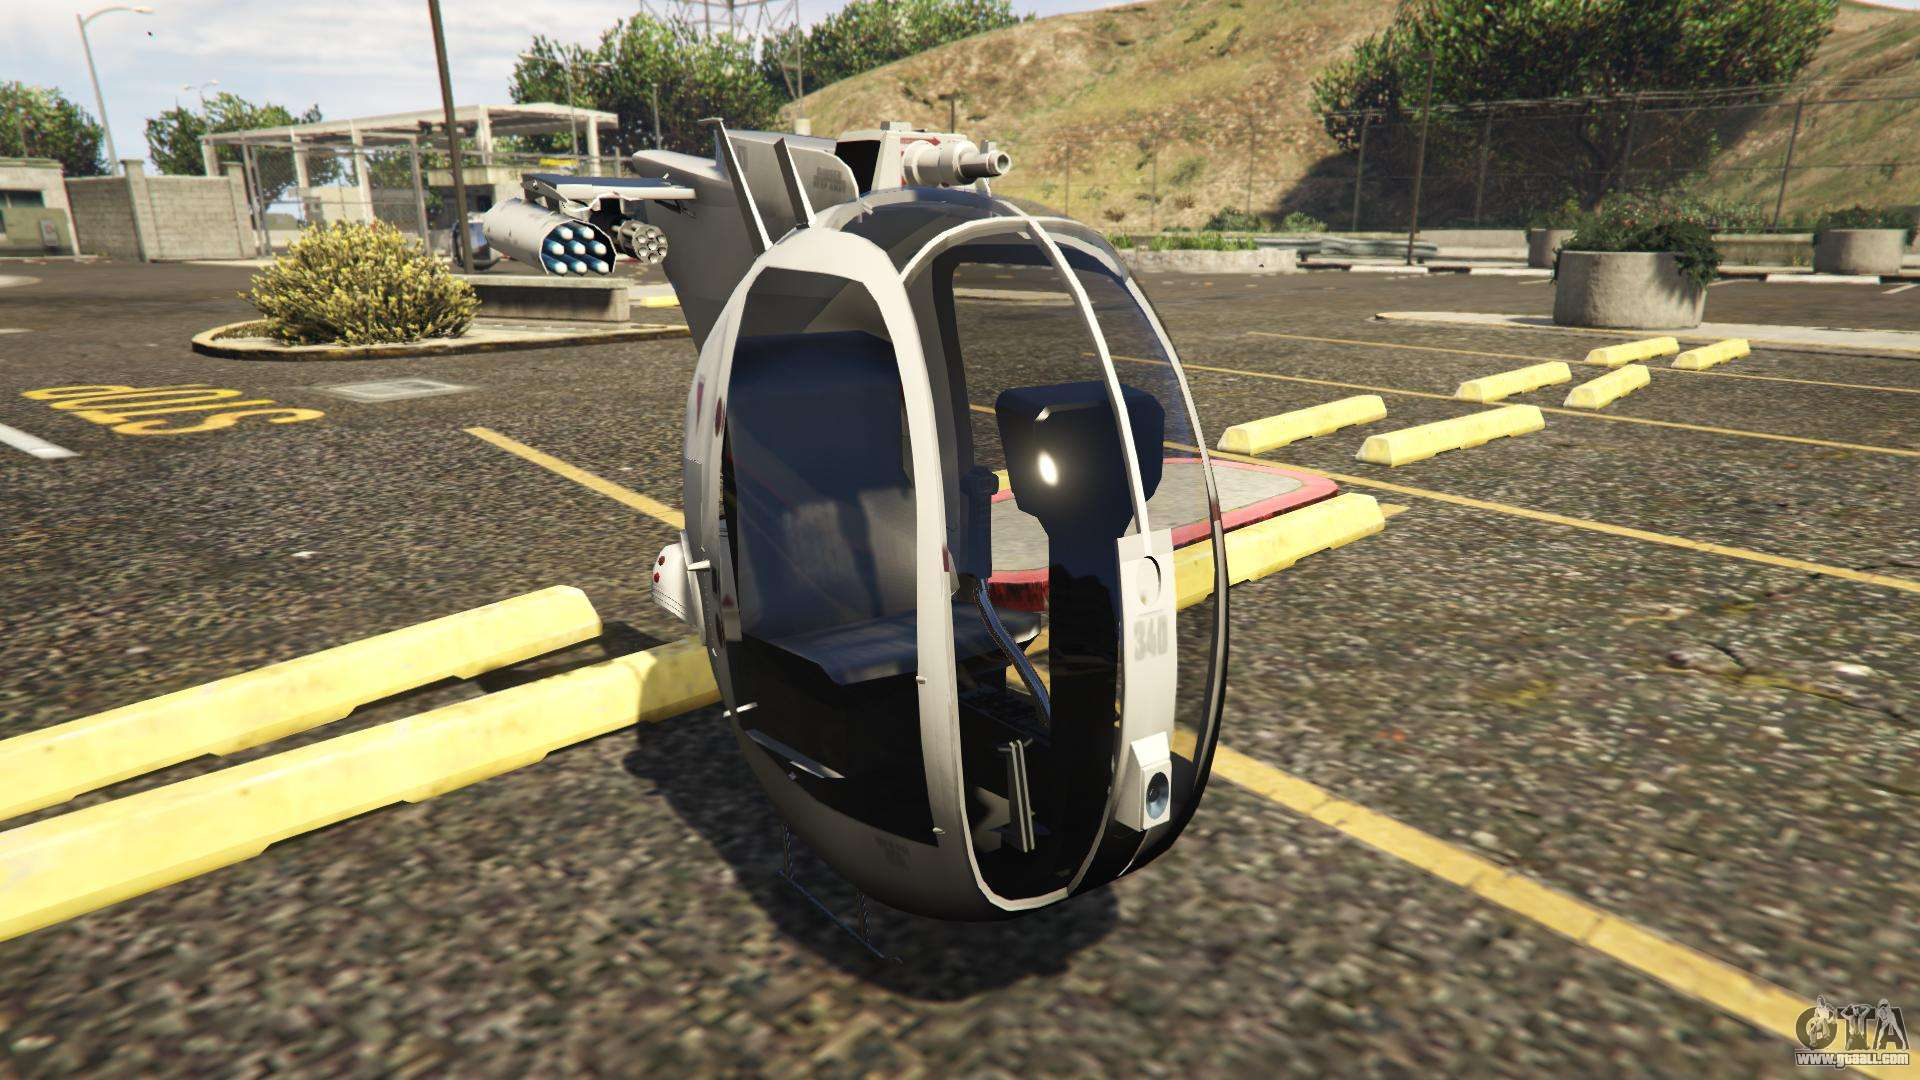 helicopter gta 5 with 84863 Warbird on Gta 5 Pc 15 Fonds D Ecran Wallpapers 4k Magnifiques A Telecharger besides Cheats For Gta Vice City as well Gta 5 Wallpaper Desktop Background Is 4k Wallpaper together with Gta 4 Secret Cars further Tsunami Waring.